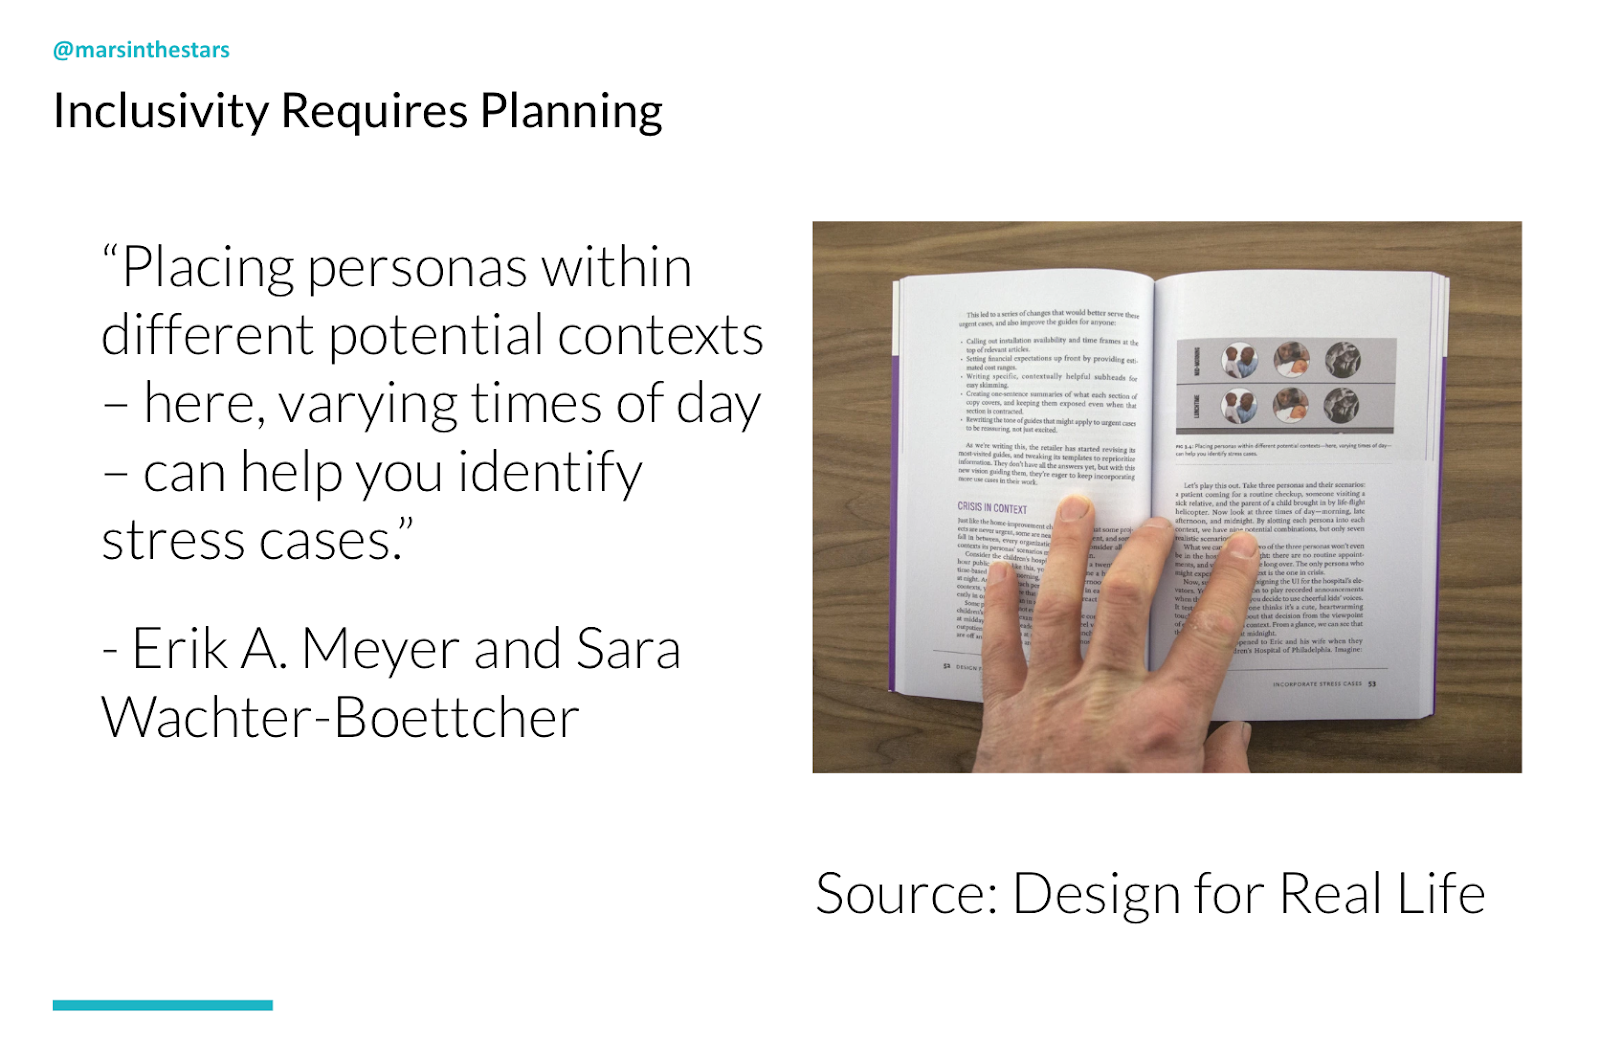 "Slide shows inclusivity requires planning. There's an image of the book Design for Real Life by Erik A. Meyer and Sara Wachter-Boettcher. The quote from this is ""placing personas within different potential contexts - here, varying times of day - can help you identify stress cases"""